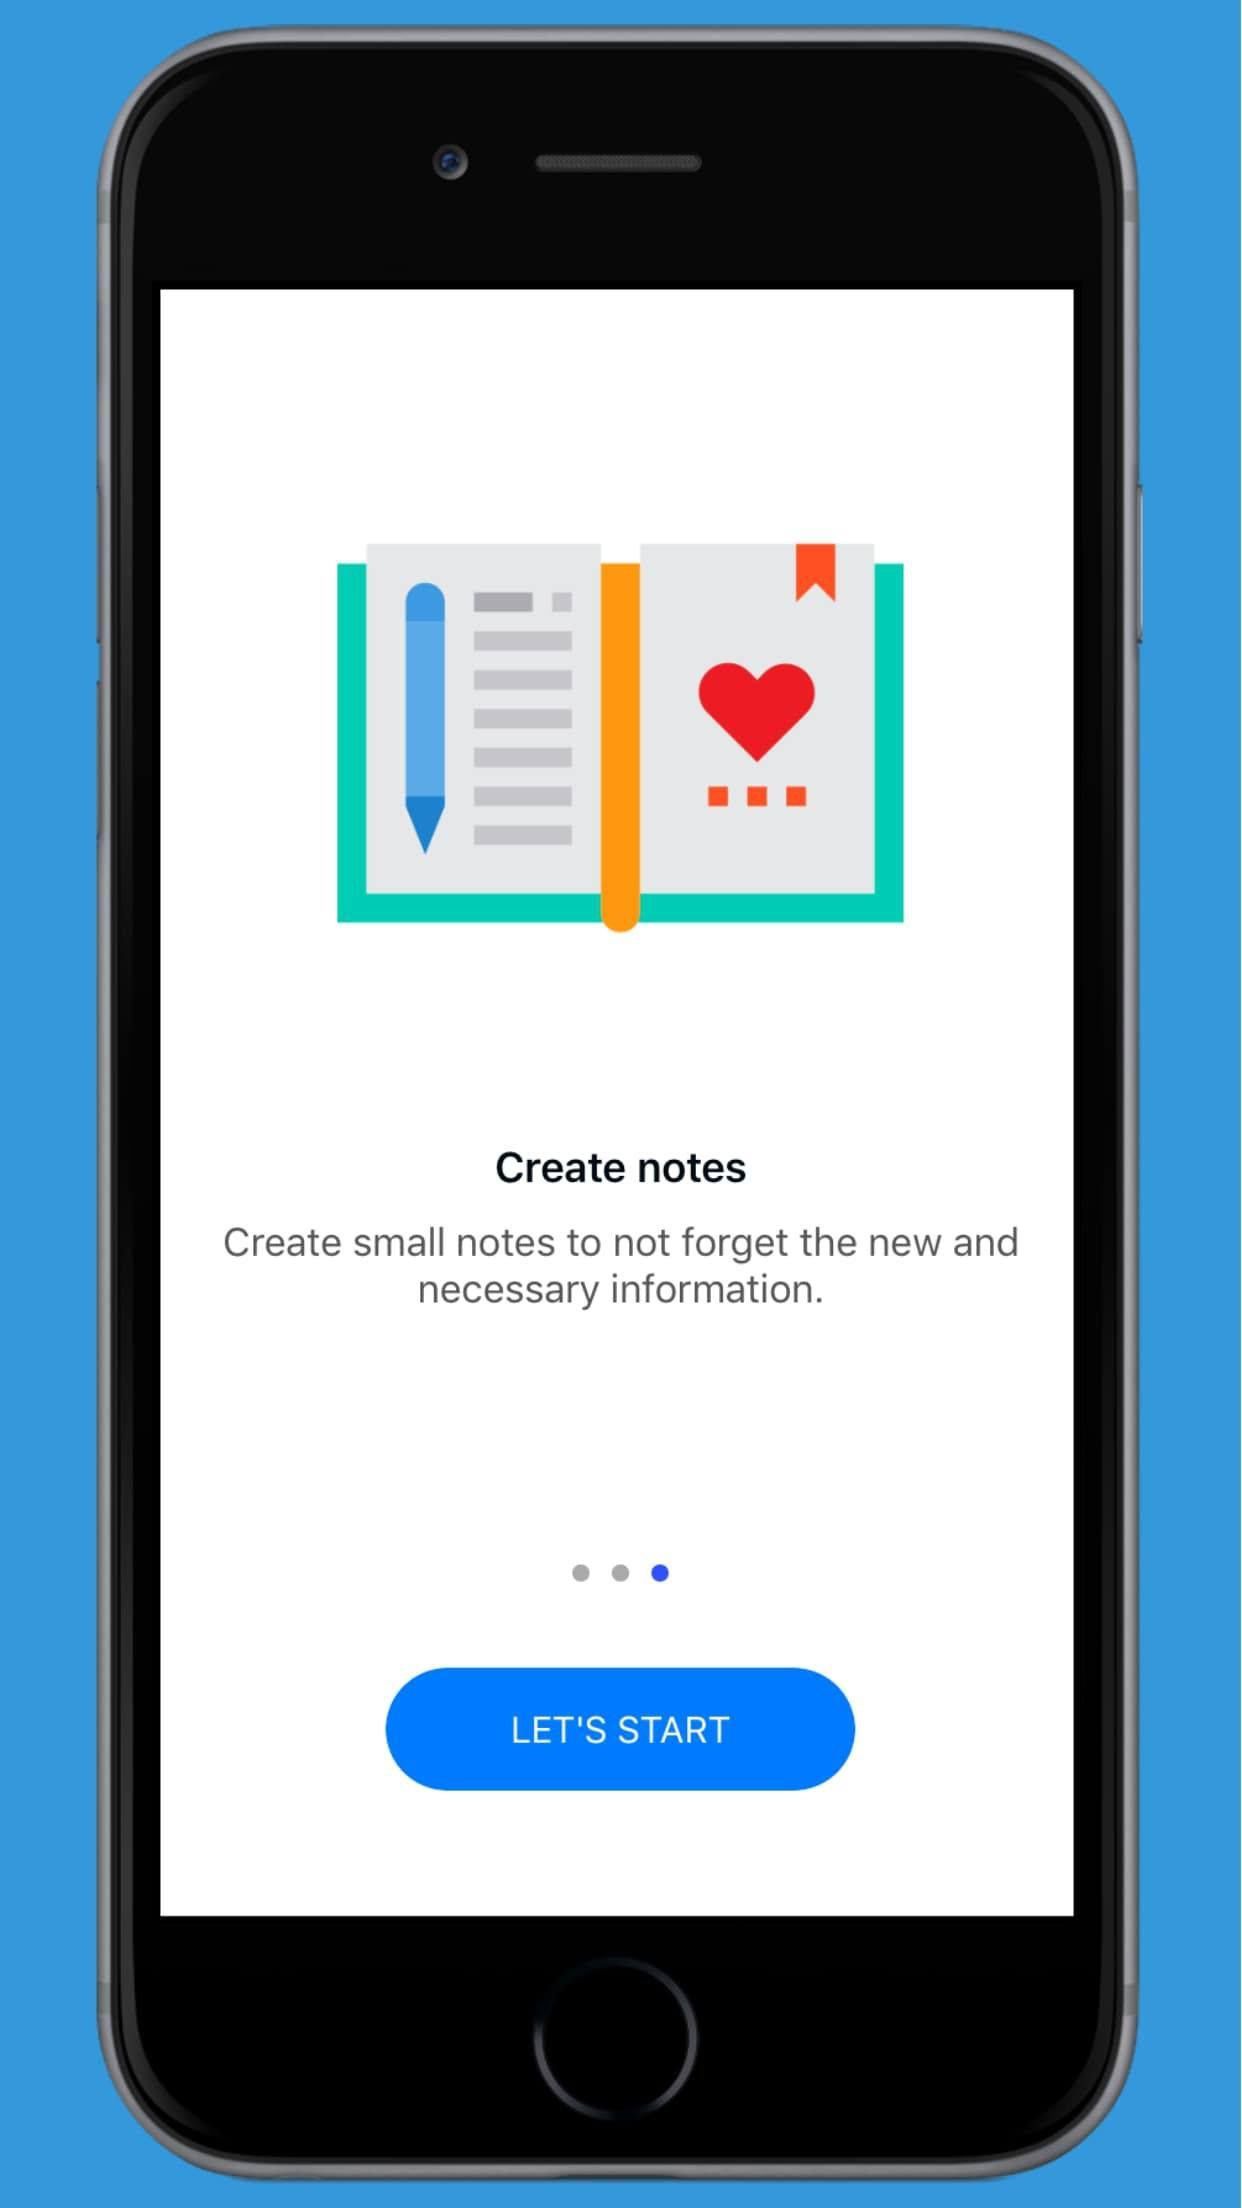 Facts World - iOS Facts and Notes Application Screenshot 4